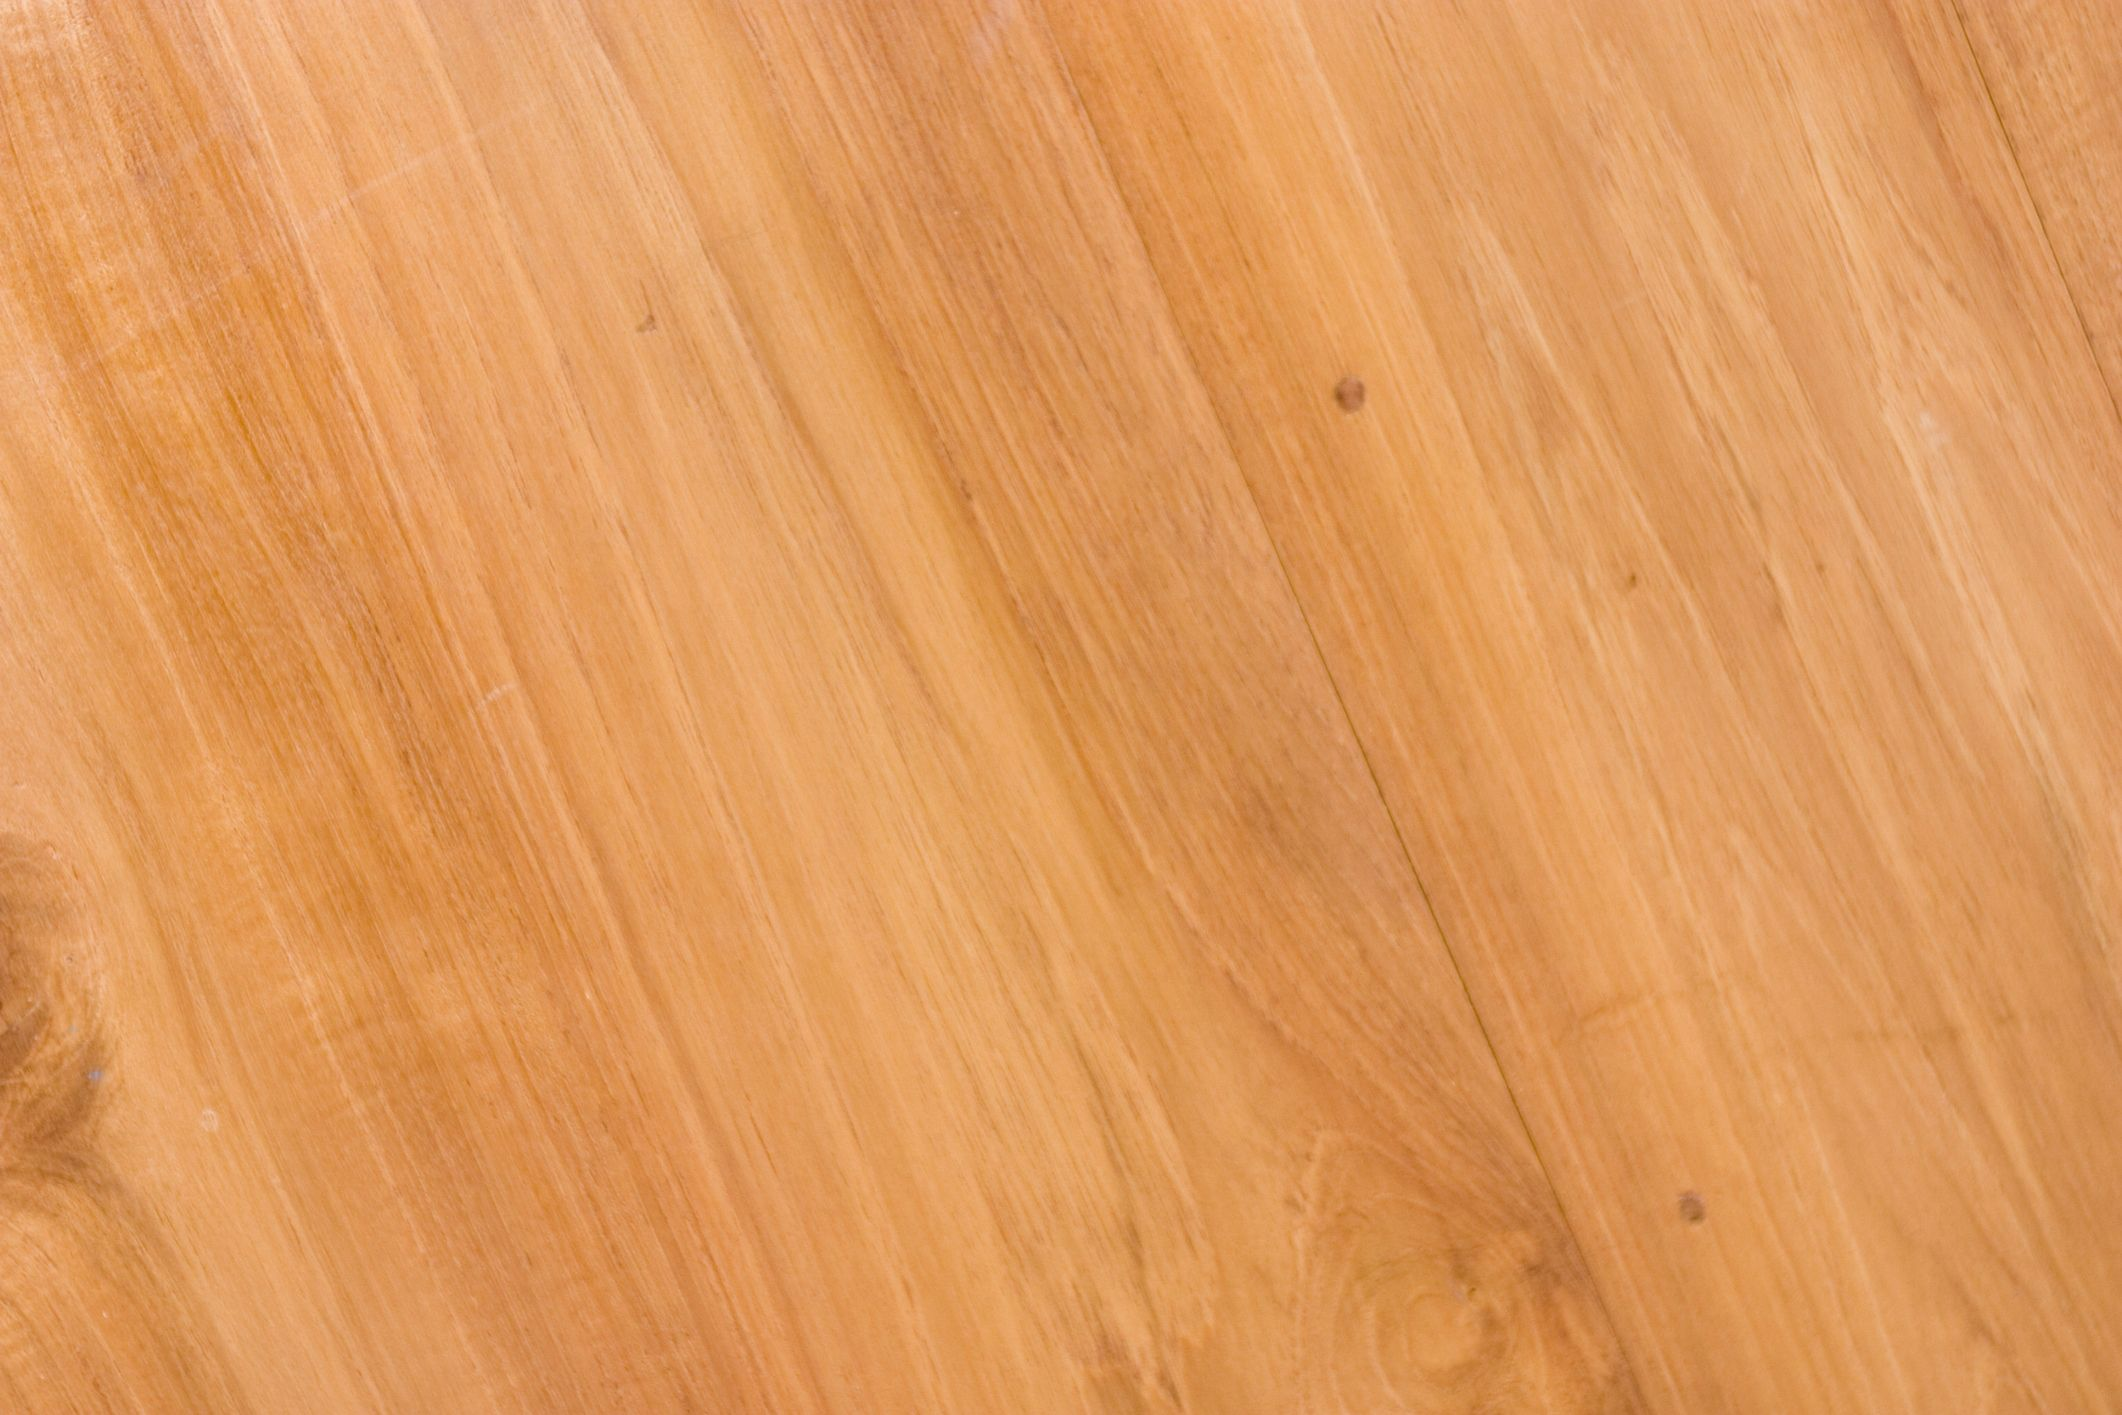 How to get glue off hardwood floors in 2020 cleaning